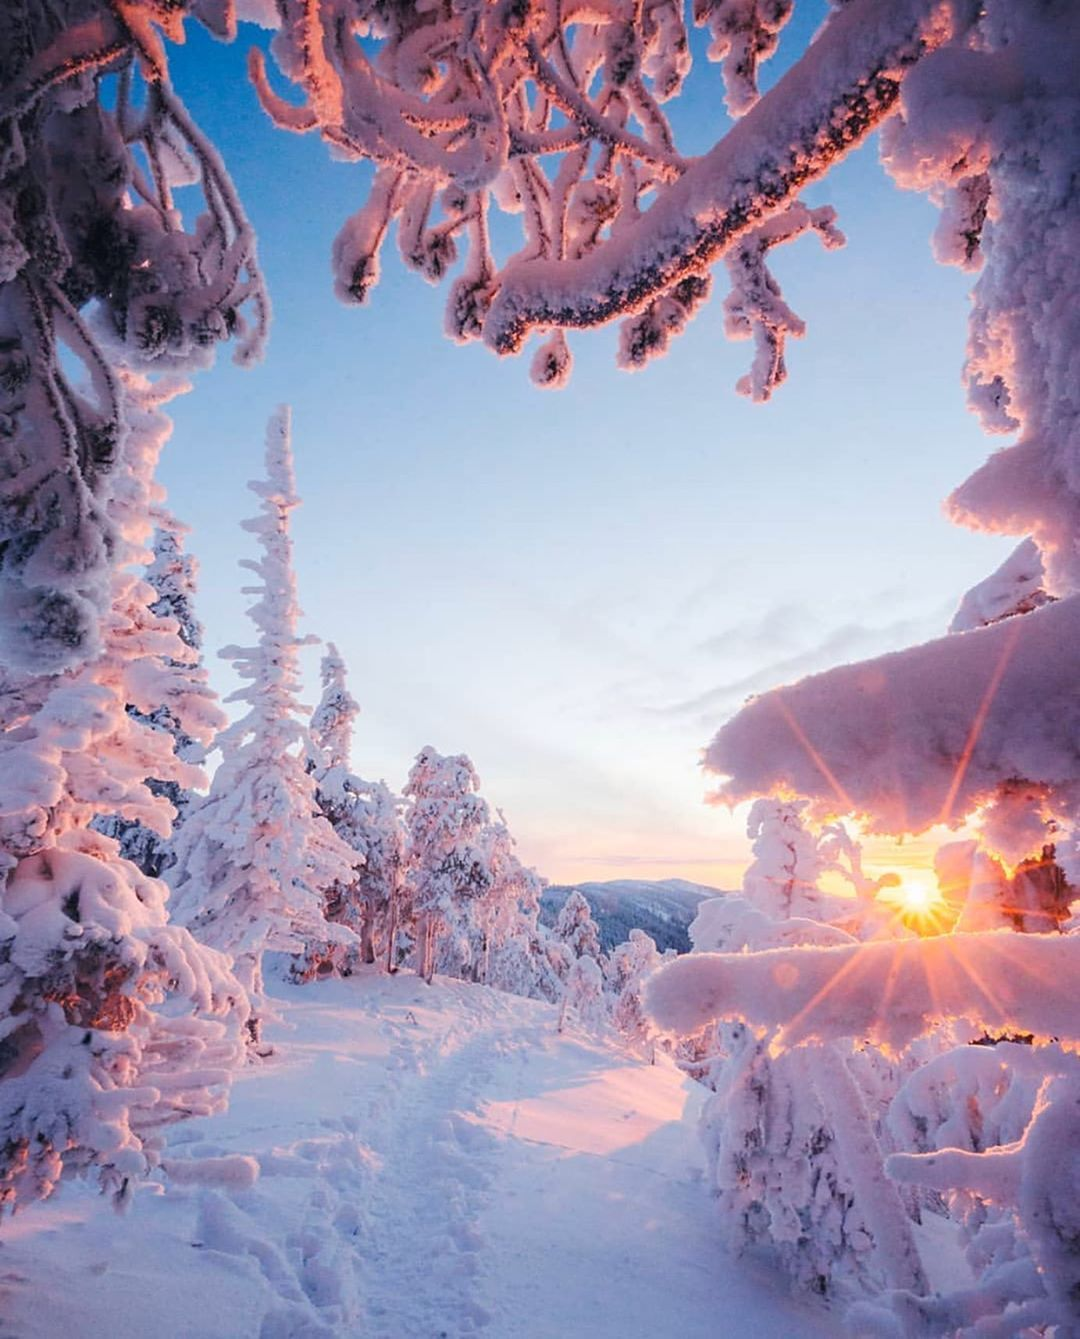 Dreamin Earth On Instagram Snowy Landscapes In Finland Photo Credit Niiloi Christma Winter Sunrise Landscape Photography Winter Landscape